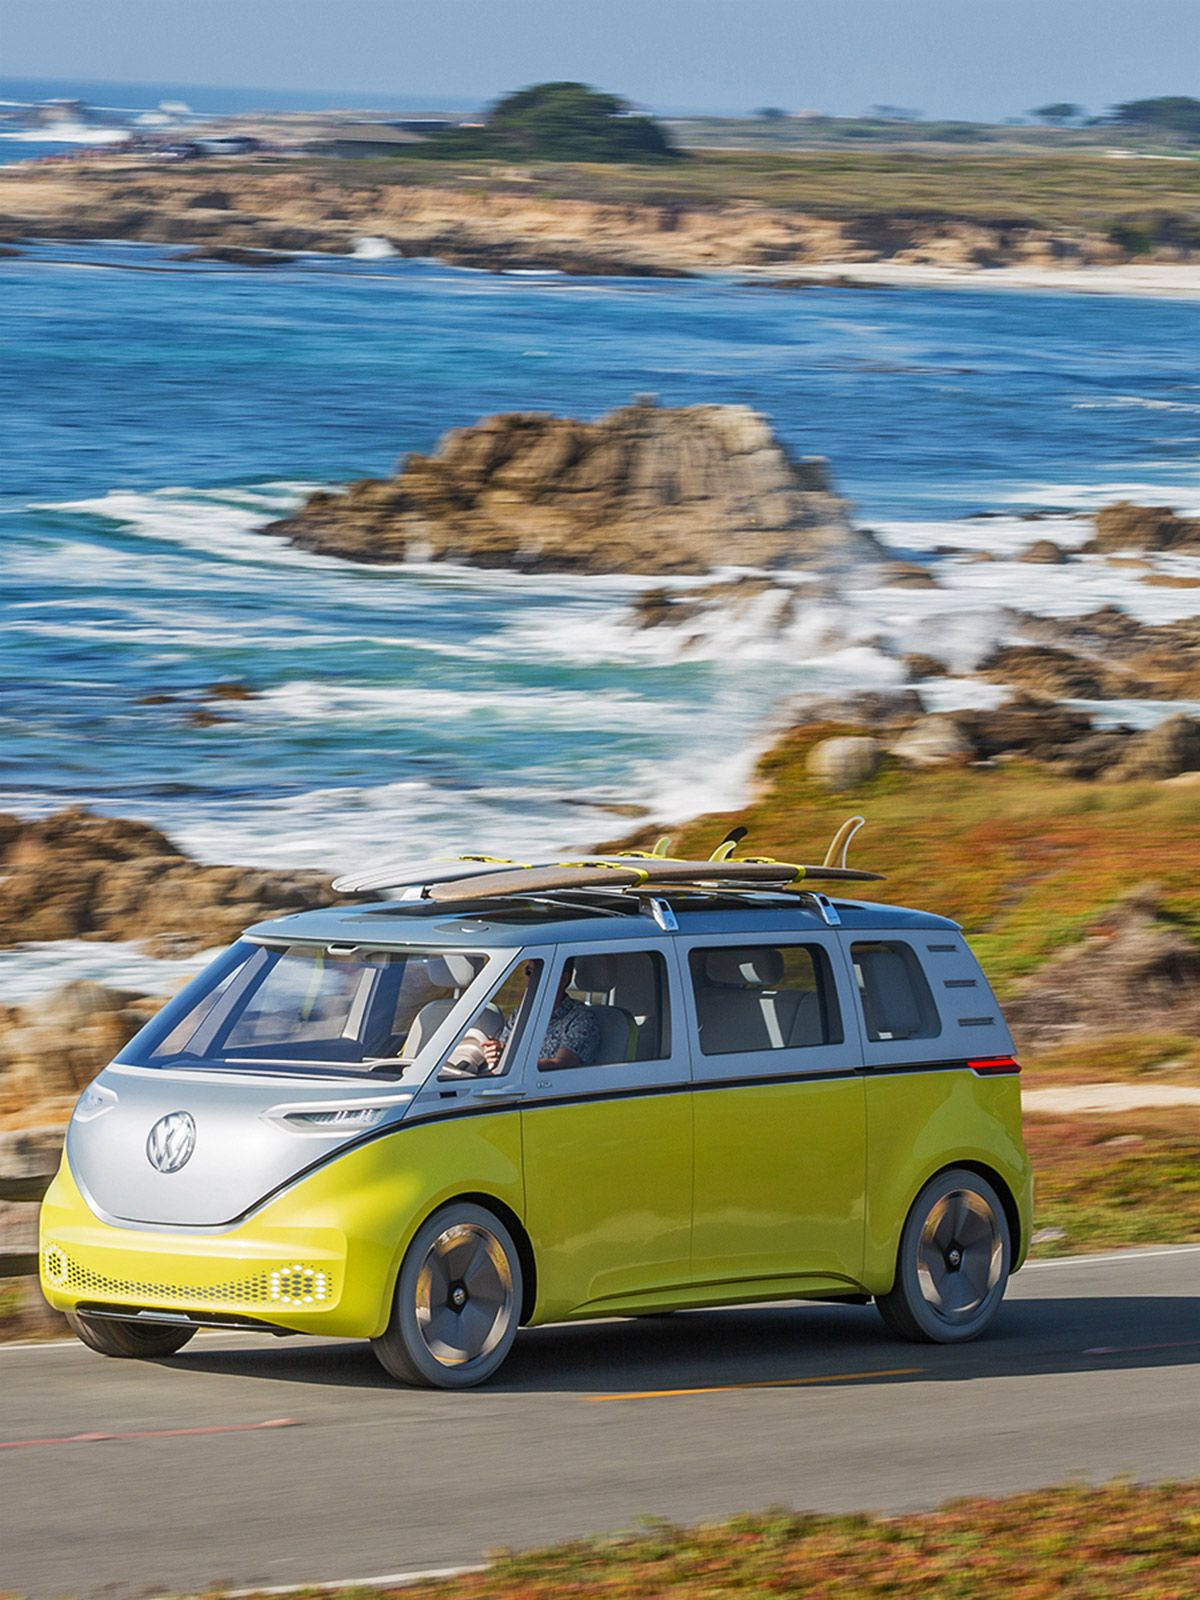 P A Few Weeks Ago Volkswagen Announced That They Re Planning On Ing Production Version Of Their I D Buzz Concept Electric Vehicle In 2022 For The